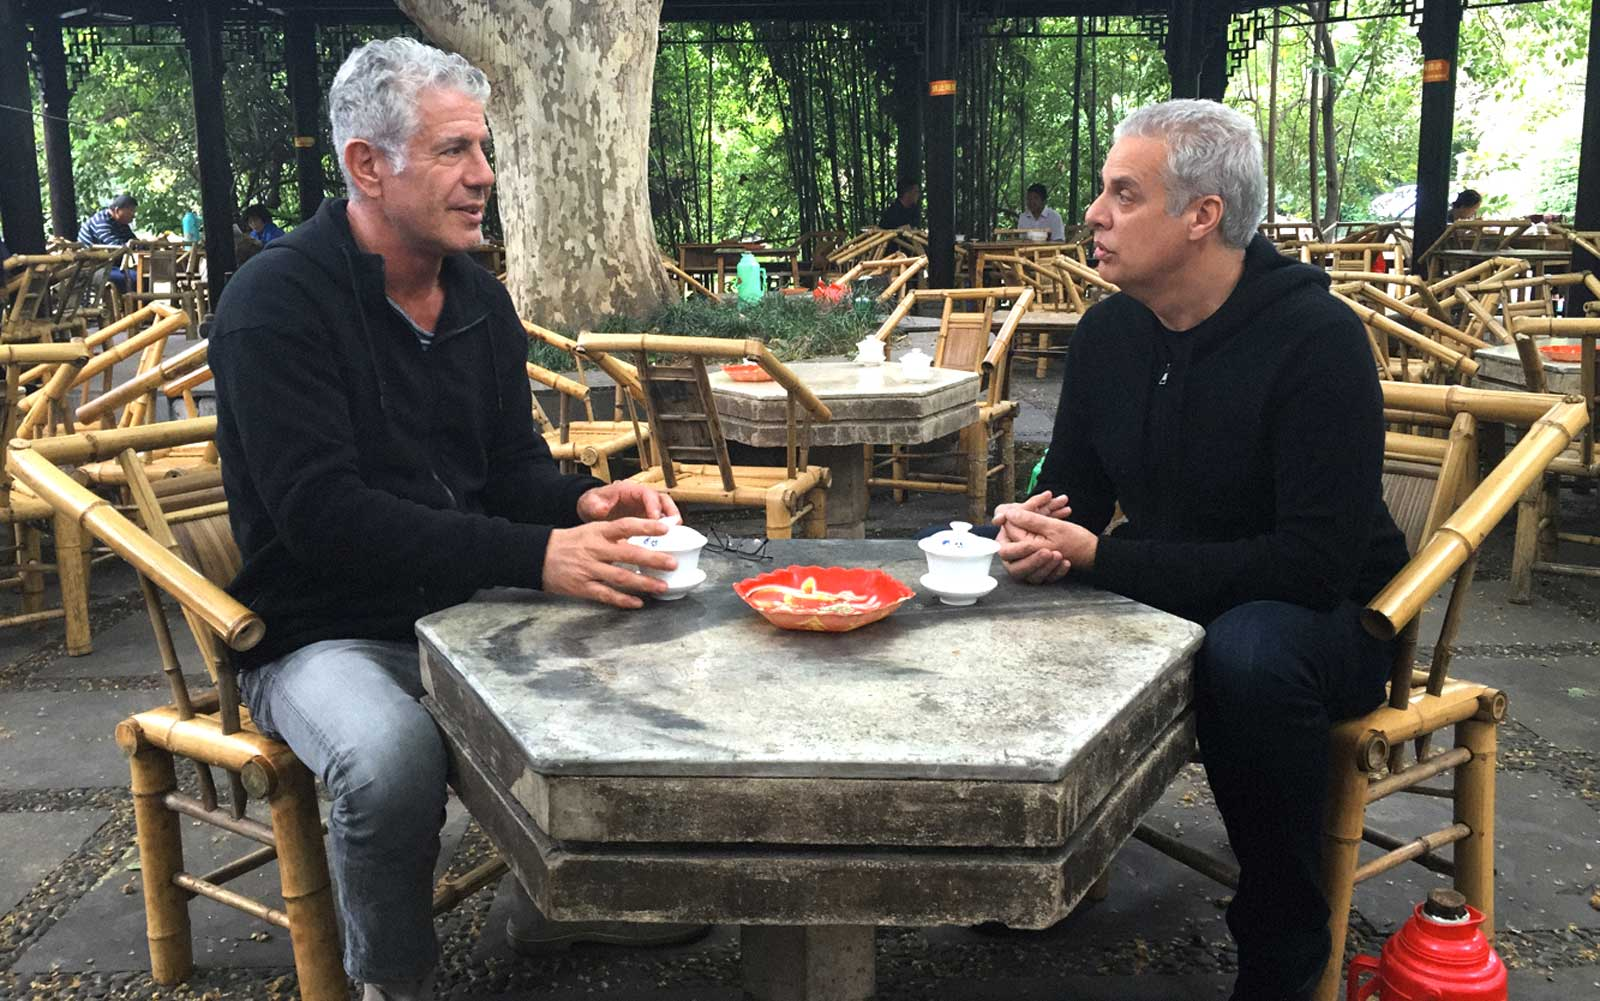 Anthony Bourdain and Eric Ripert Talk Speedos and Spices in Sichuan